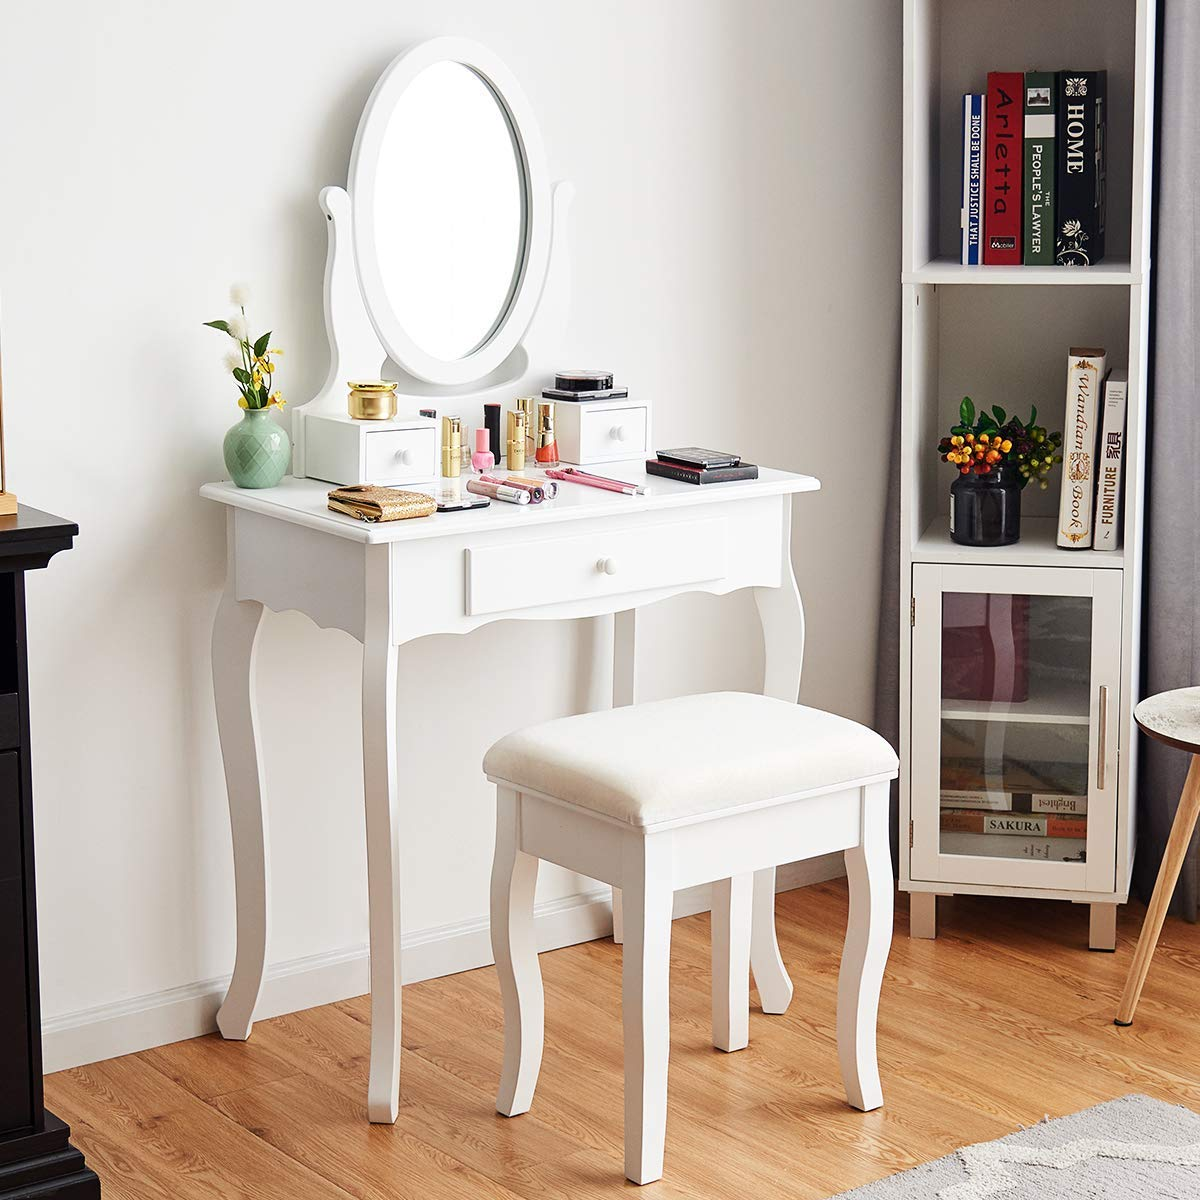 Giantex Vanity Table Set 3 Drawers with Mirror, Cushioned Bench Bathroom Bedroom Wood Room Vanities Removable Top Dual Use Jewelry Makeup Dresser Desk, Dressing Tables w Stool, White